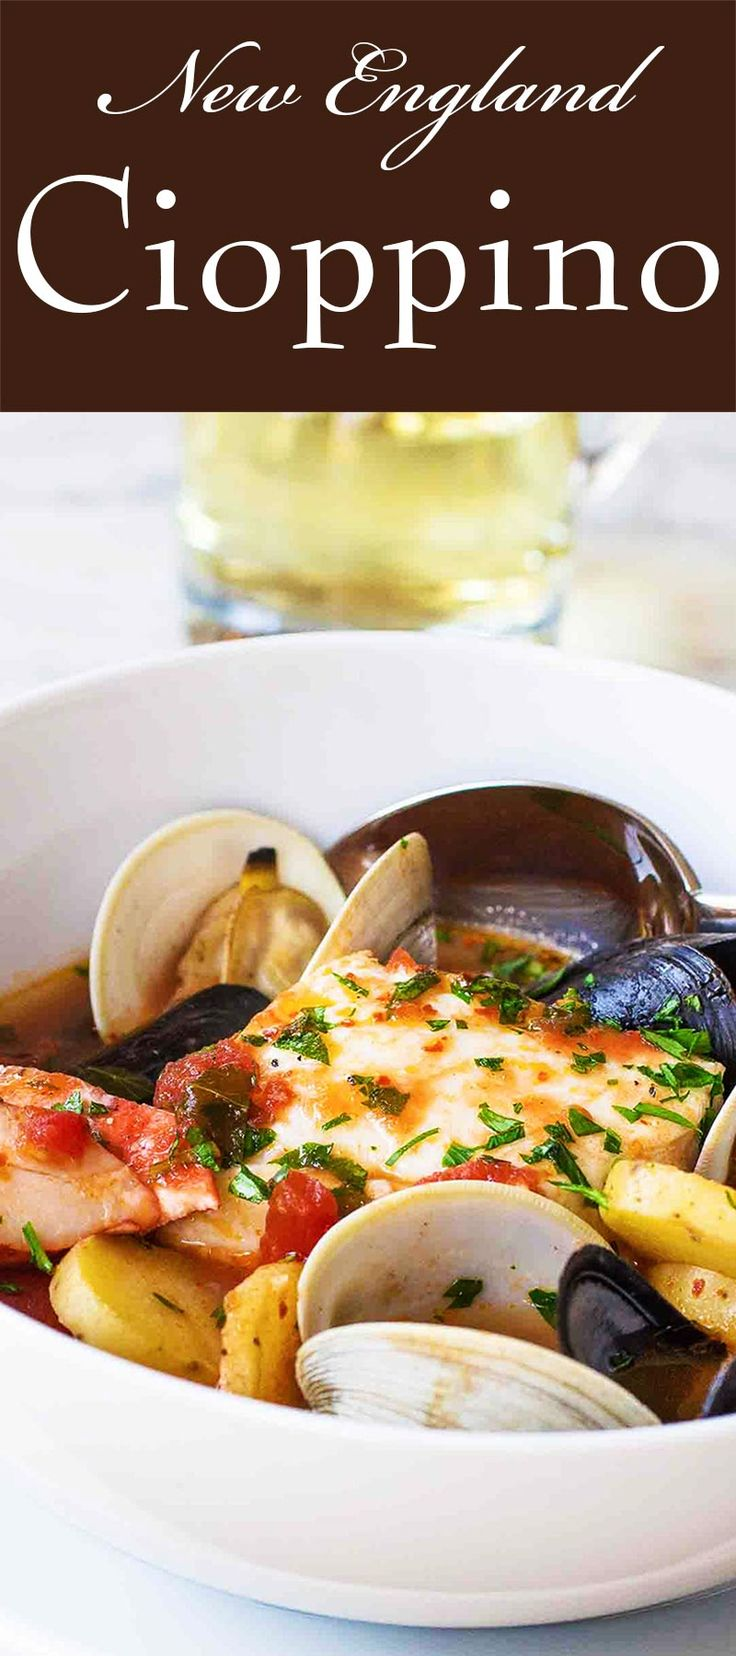 Amazing Seafood Ideas For Dinner Party Part - 9: New England Cioppino Seafood Stew With Haddock, Lobster, Clams, And  Mussels. Perfect